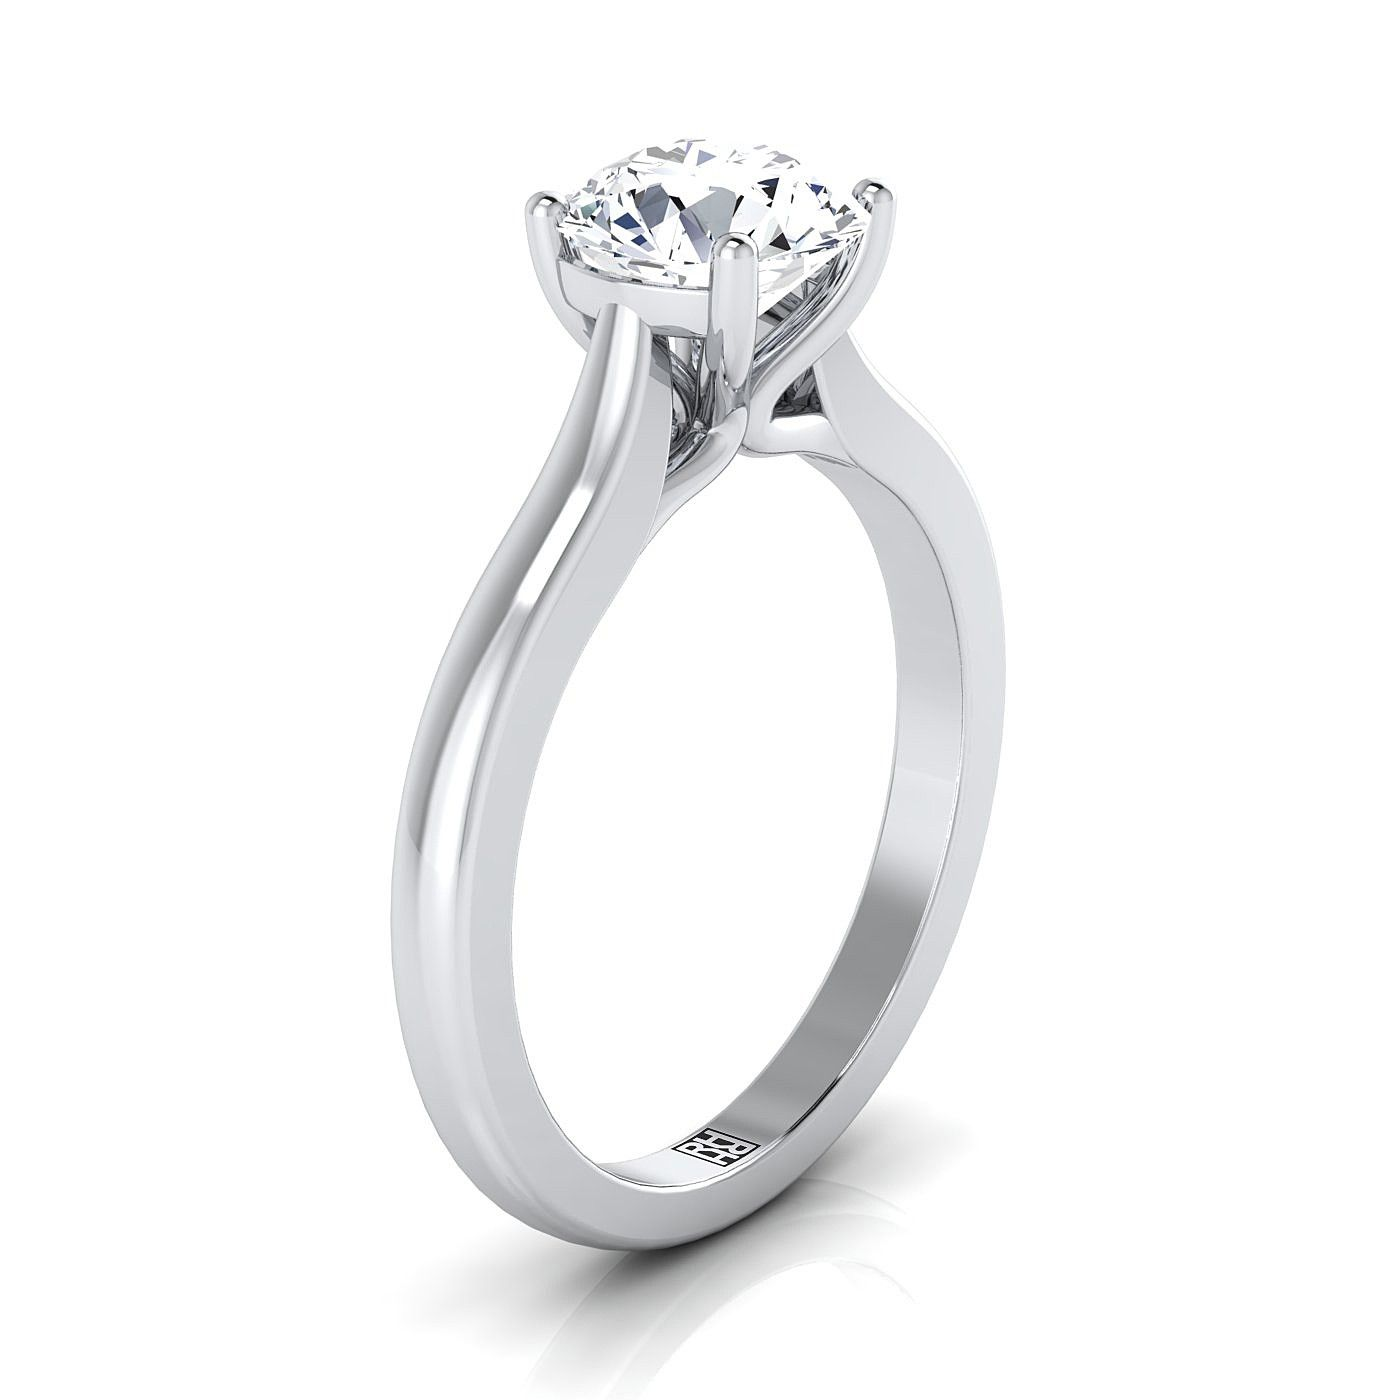 4 Prong Diamond Solitaire Engagement Ring With Rounded Shank In